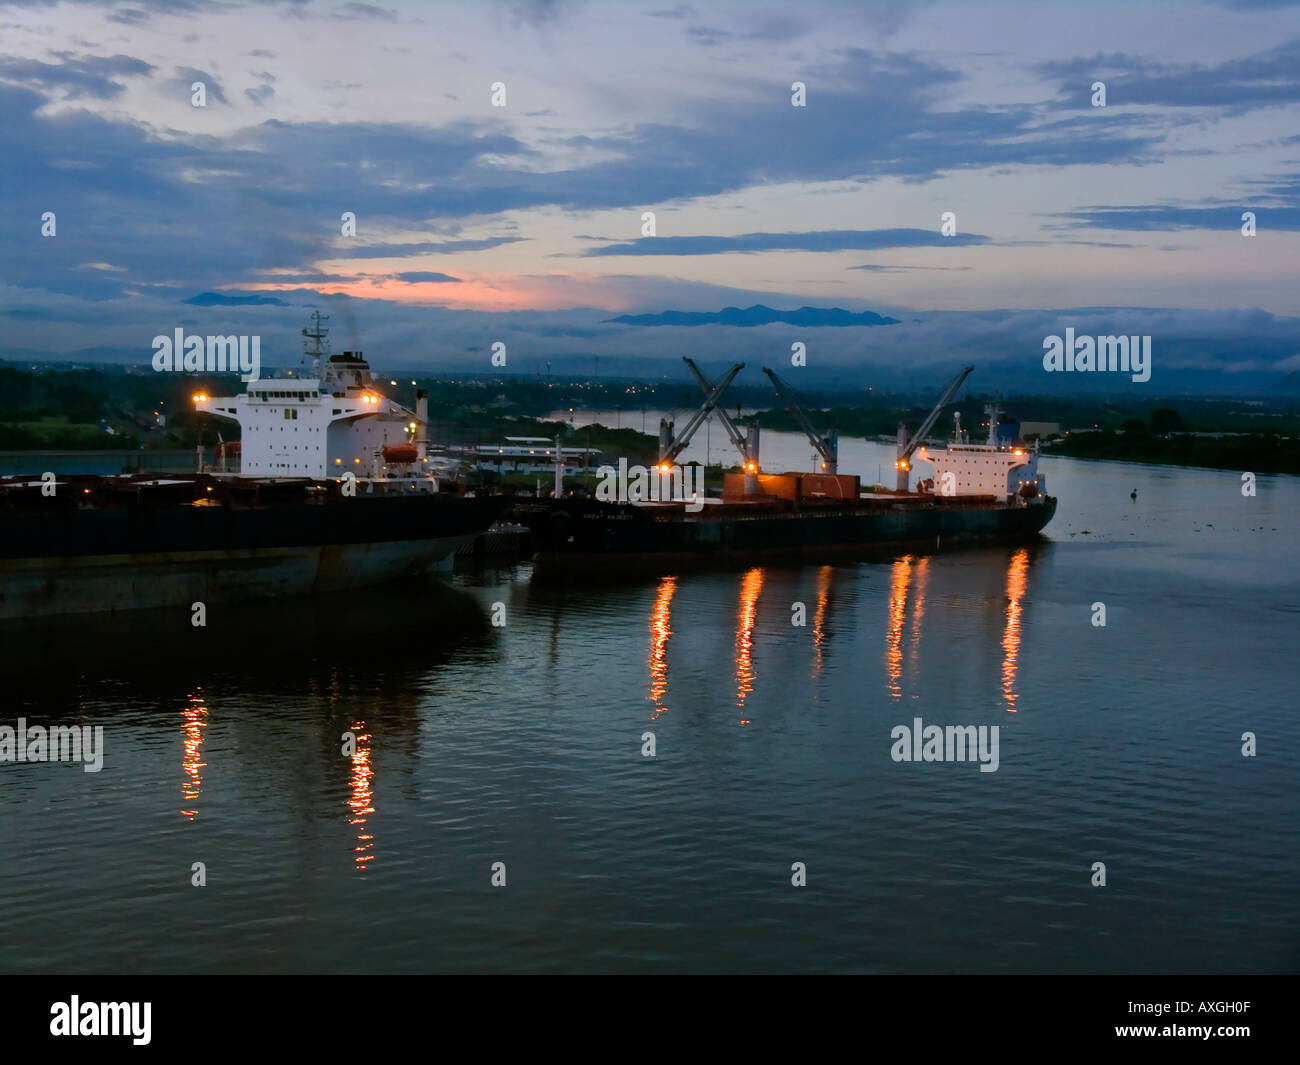 Bulkcarriers in the port during sunset. - Stock Image